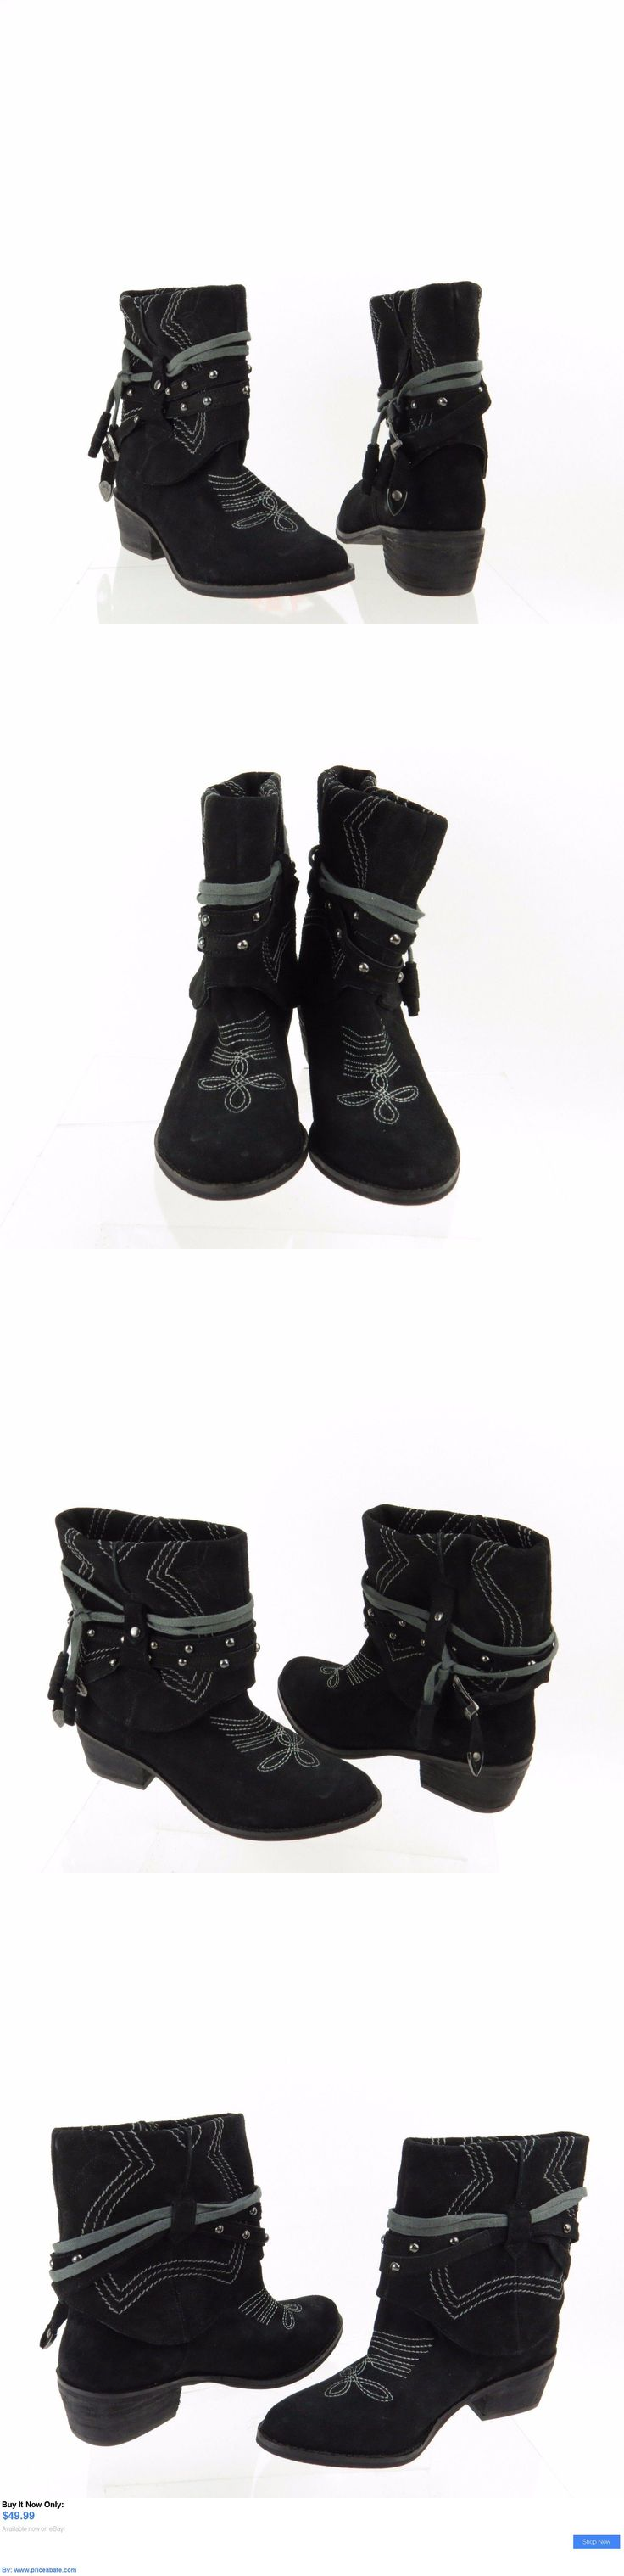 Women Boots: Womens Naughty Monkey Shoes Black Suede Short Ankle Boots Size 6 M New! BUY IT NOW ONLY: $49.99 #priceabateWomenBoots OR #priceabate